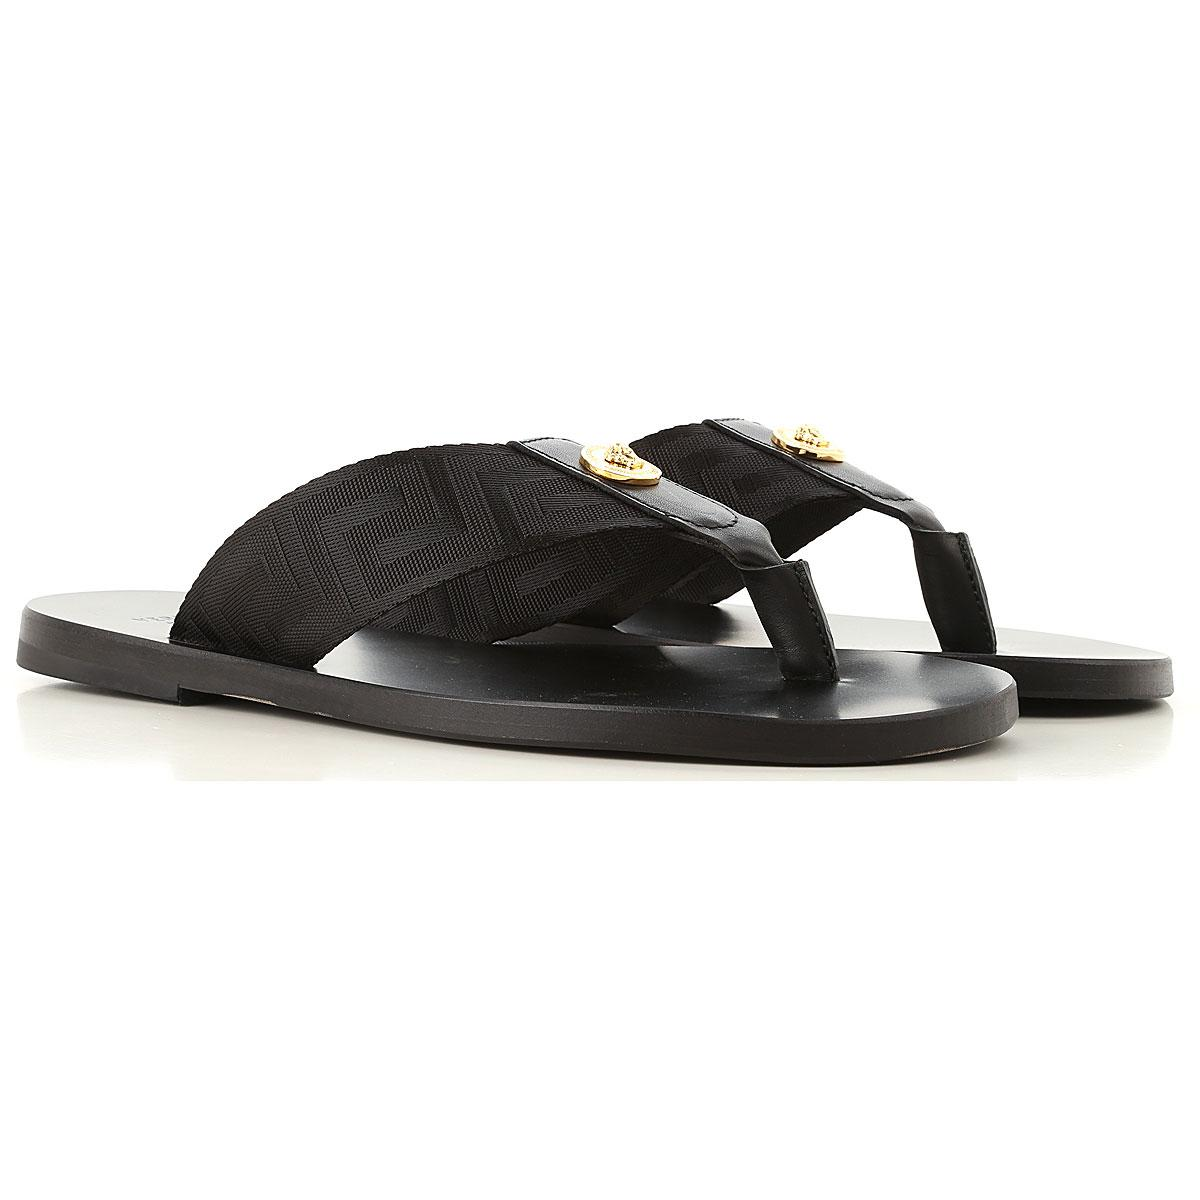 ca95a70117a6 Versace Sandals For Men in Black for Men - Lyst